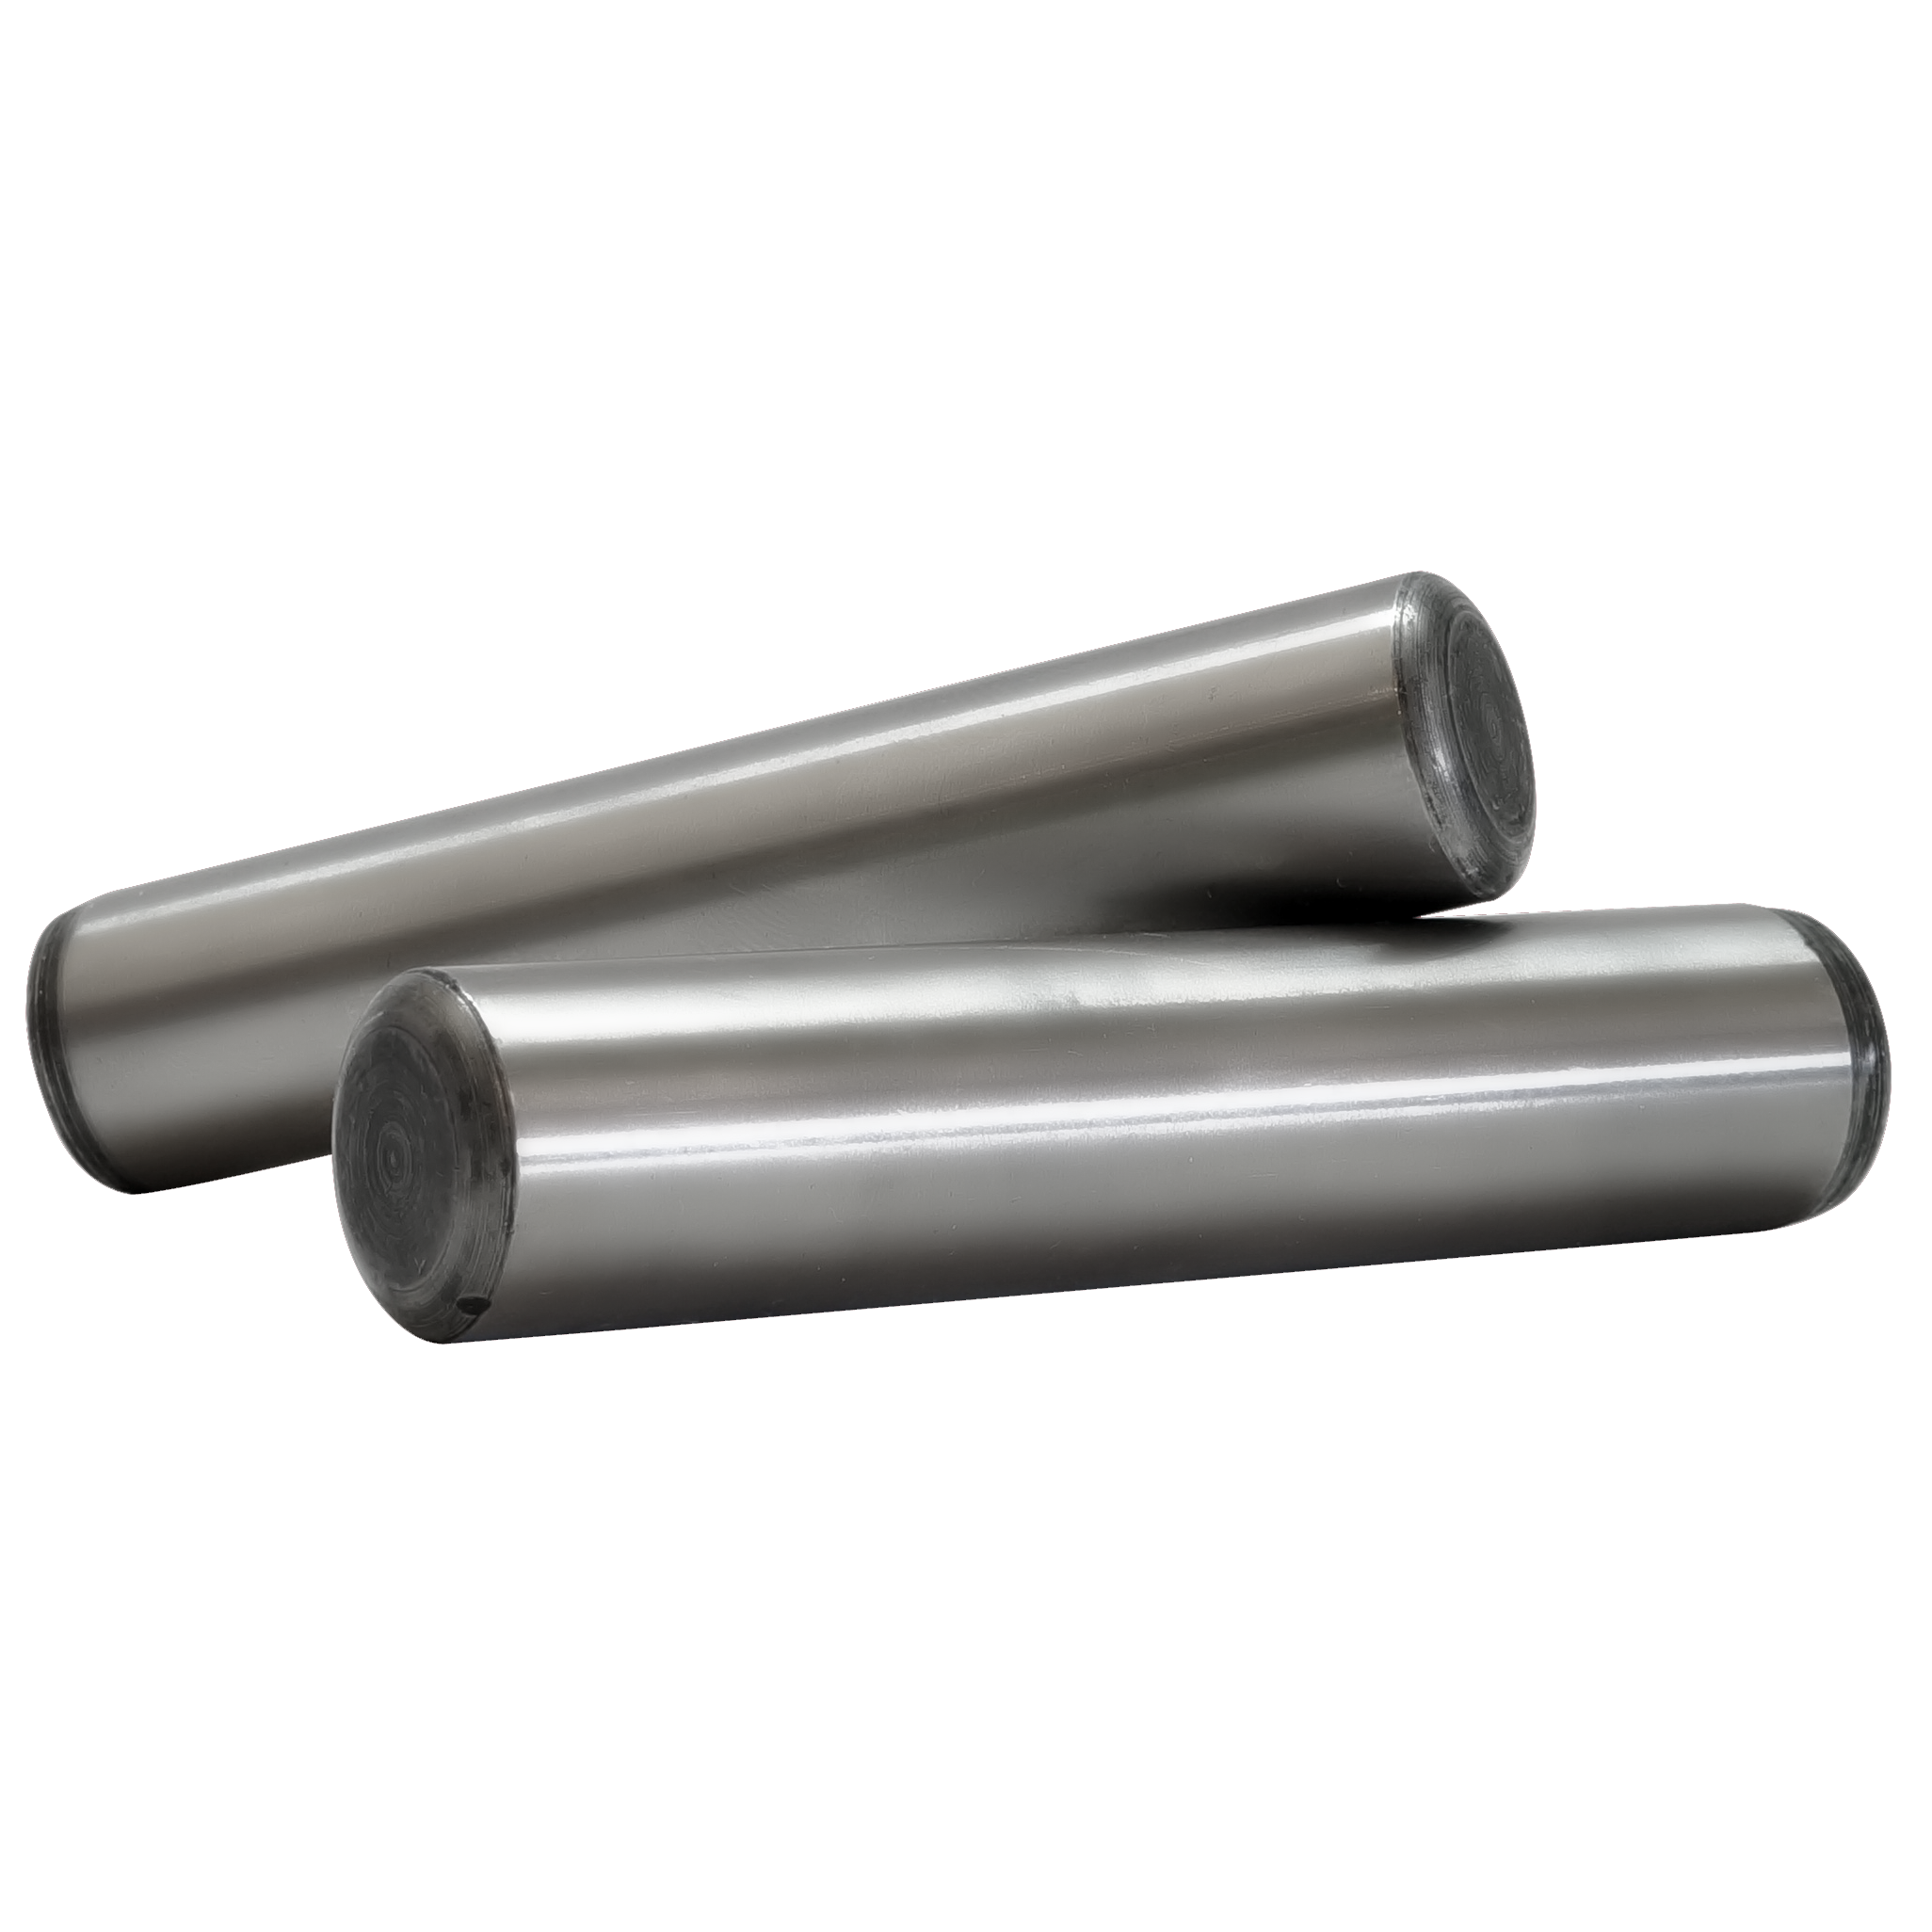 "7/16x2 ASME B18.8.2 Alloy Steel Dowel Pin Hardened Ground 0.0002"" Over Sized  (Unbrako)"